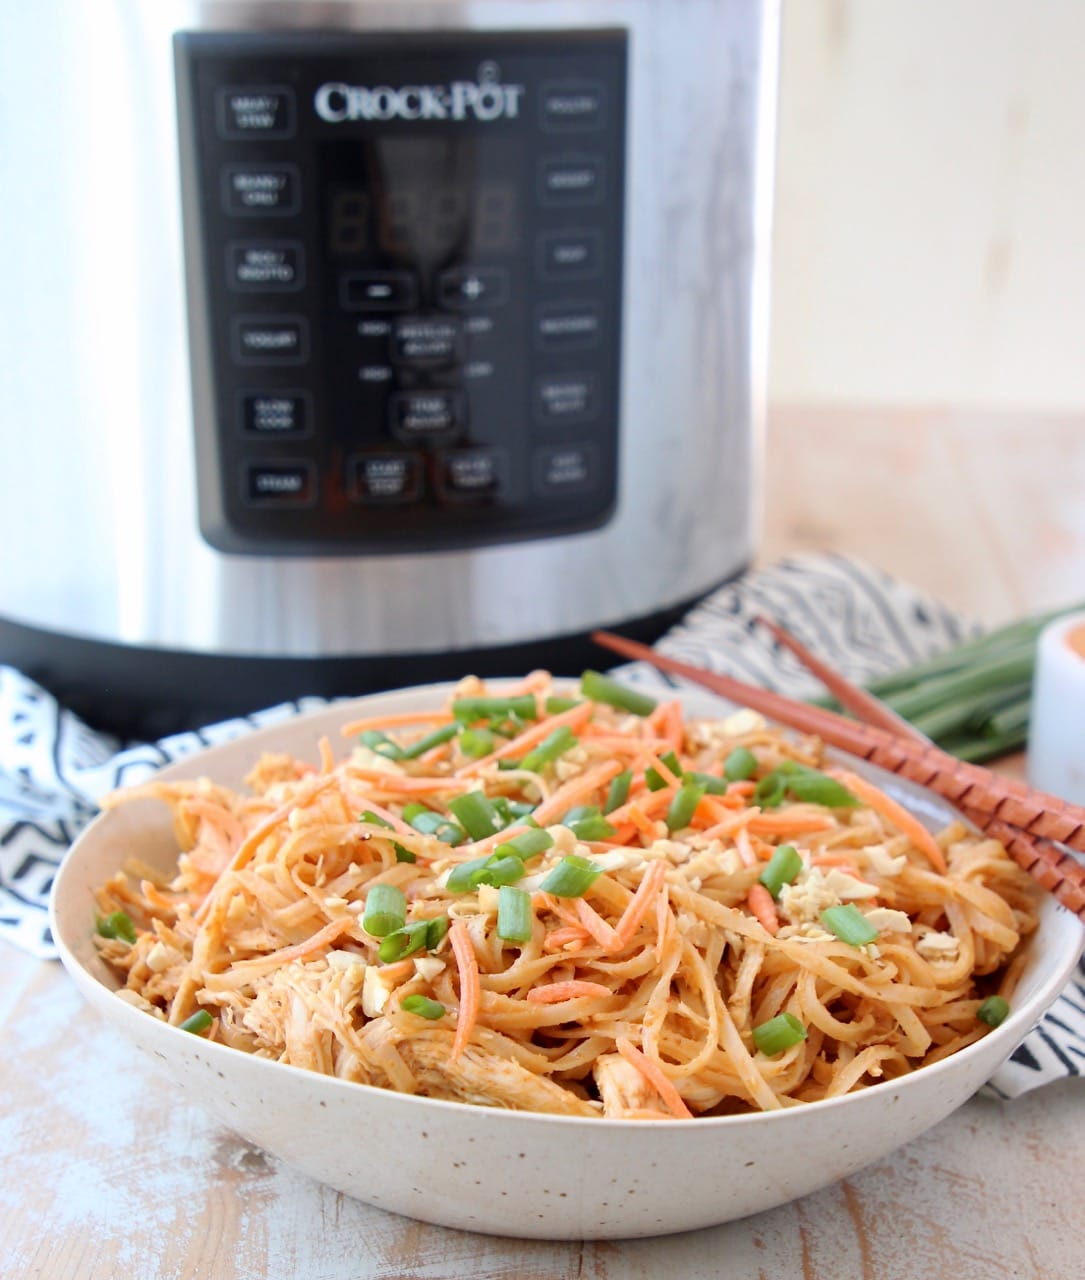 Crock Pot Express Crock Multi Cooker in background with bowl of Thai Peanut Chicken Noodles in front with chopsticks and green onions